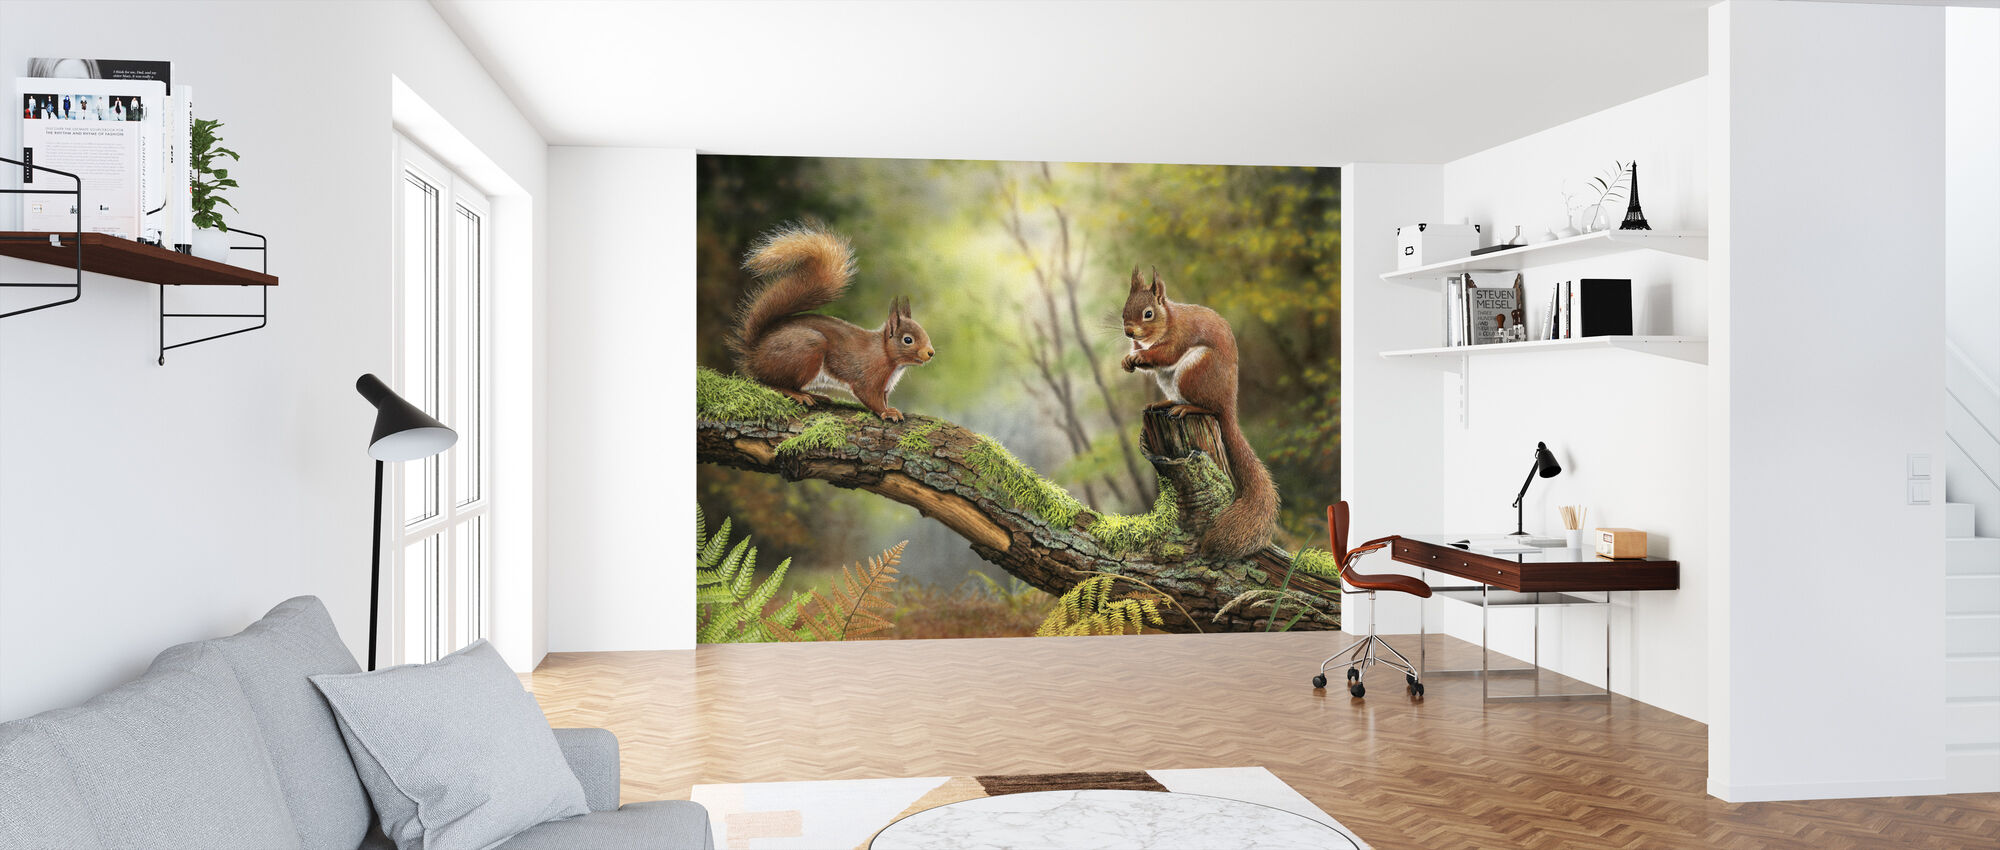 Red Squirrels - Wallpaper - Office